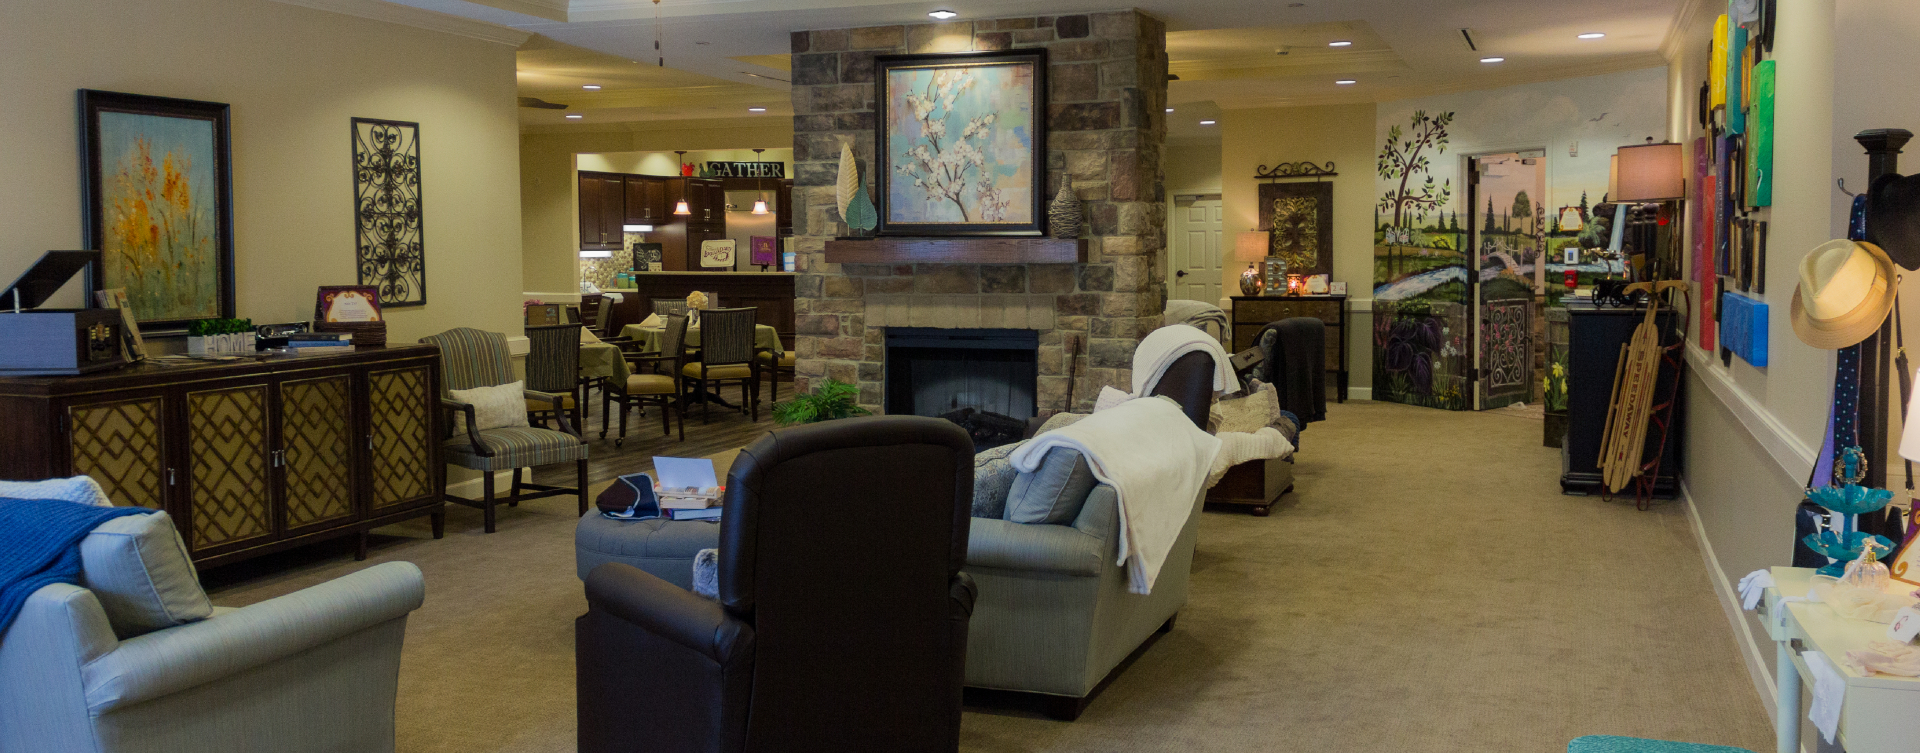 Residents can enjoy furniture covered in cozy fabrics in the Mary B's living room at Bickford of Suffolk